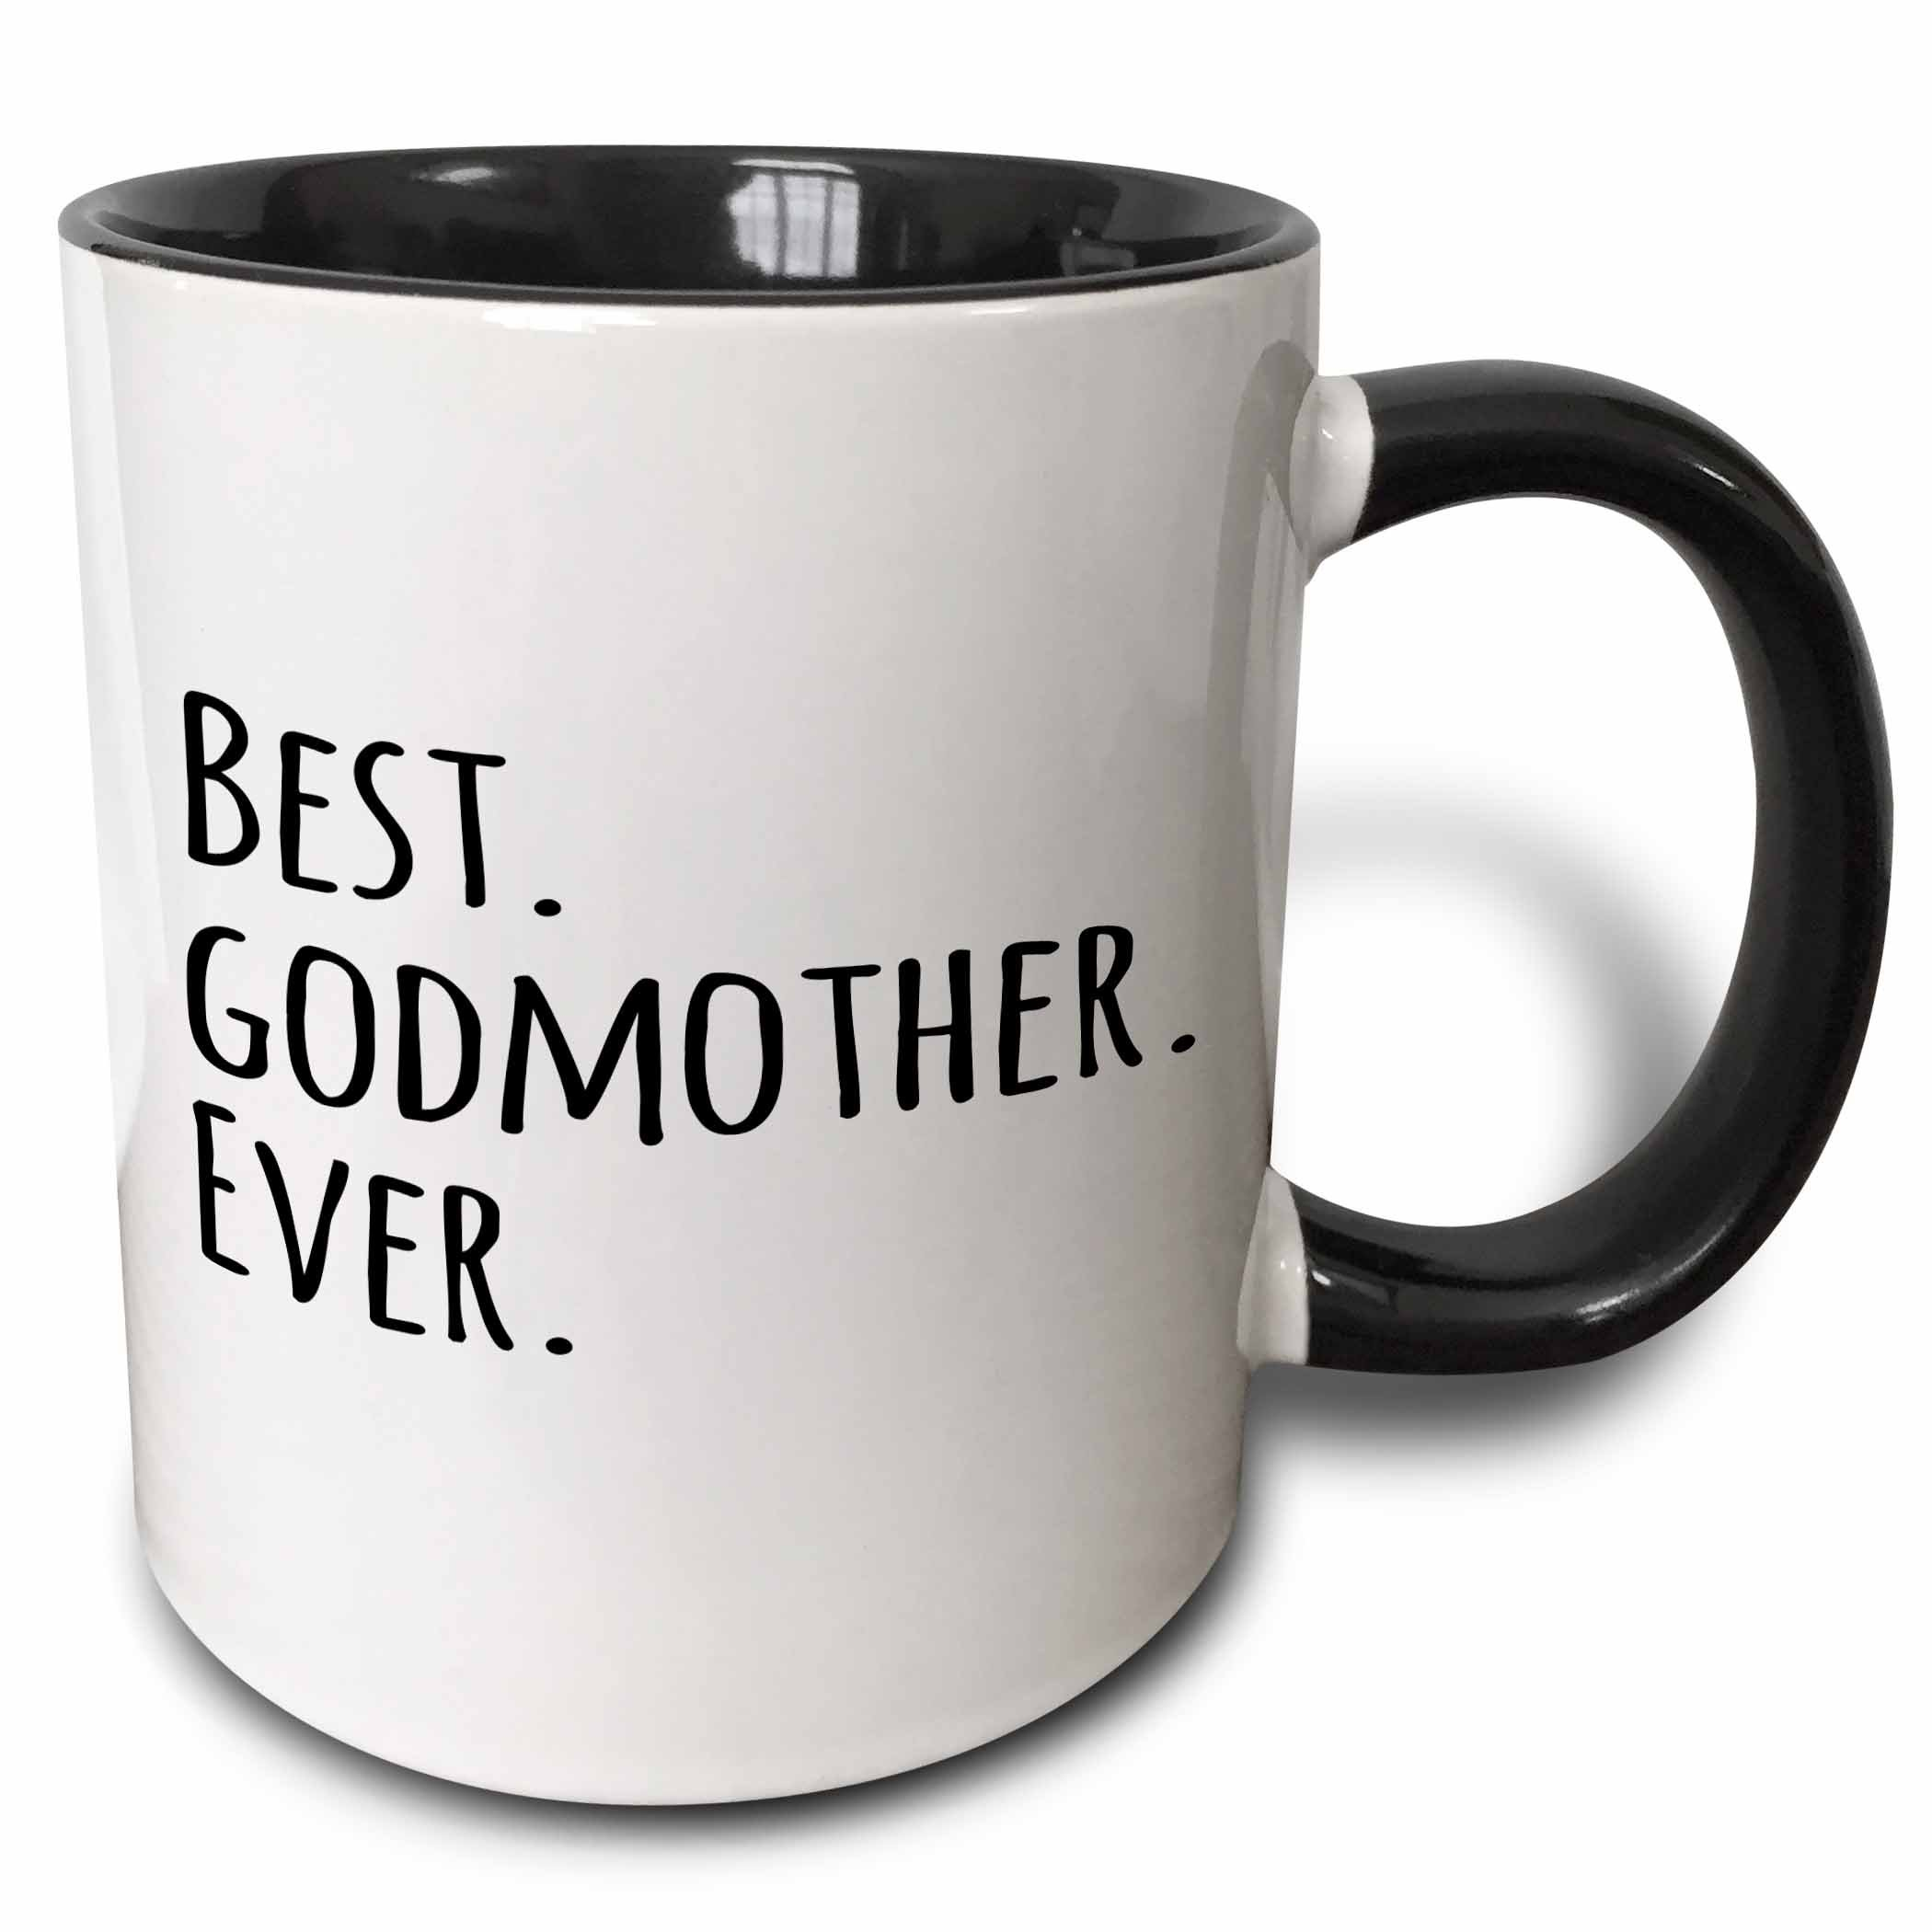 Duties of the godmother: a selection of sites